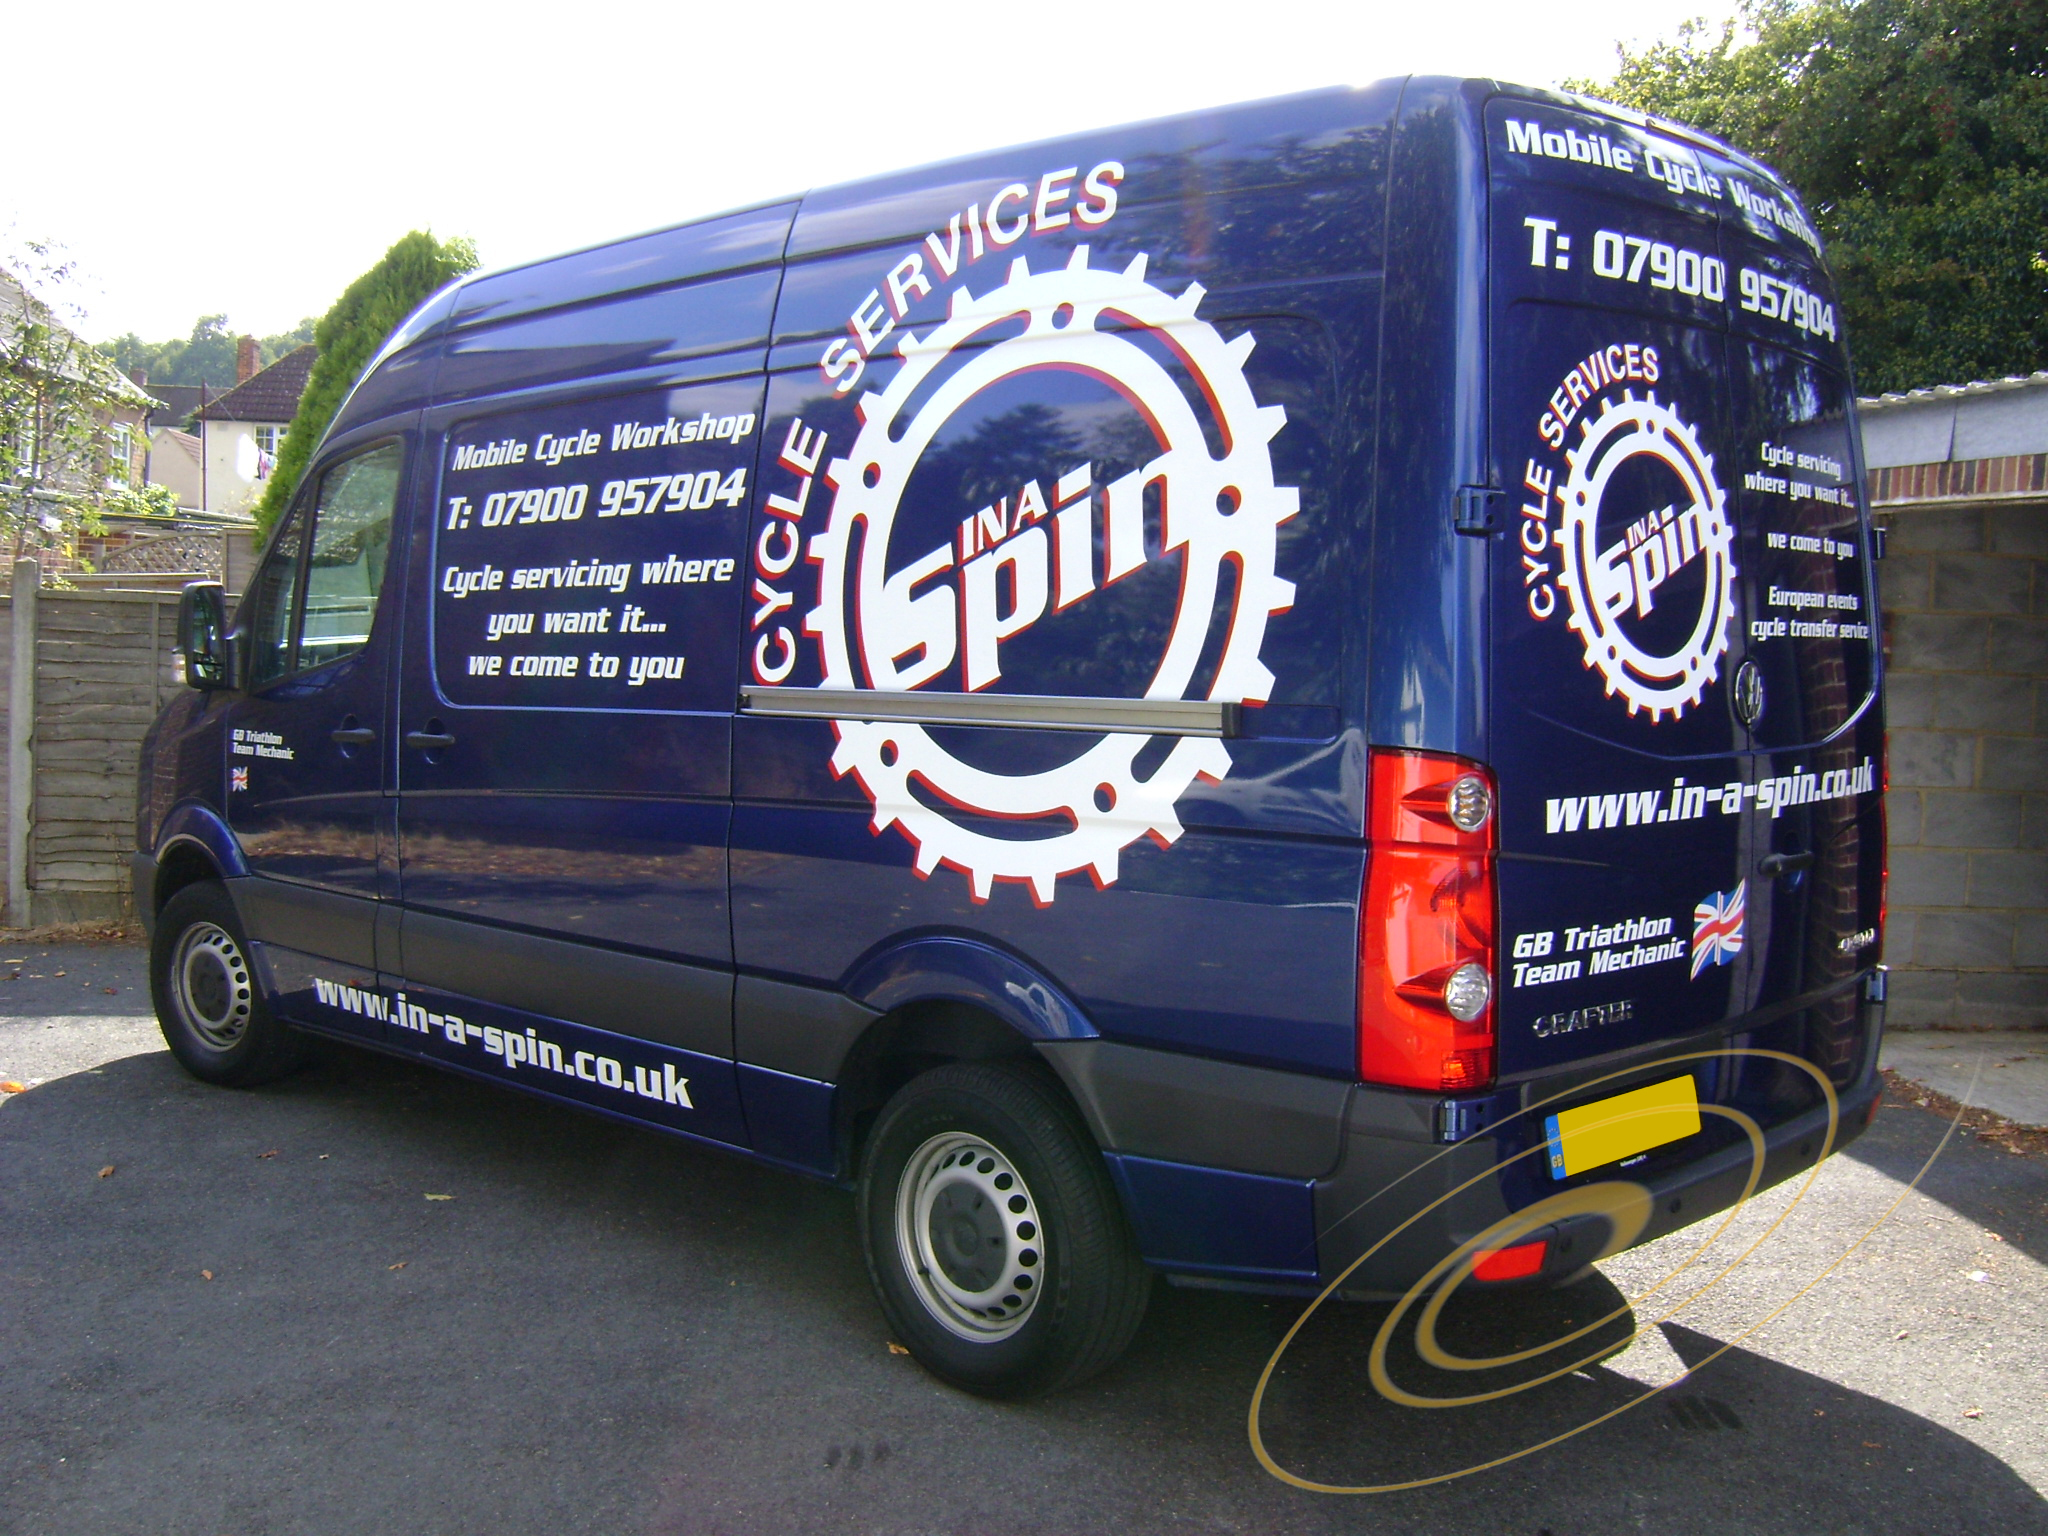 d40b159be5 vw crafter van signwriting kent. van picture graphics